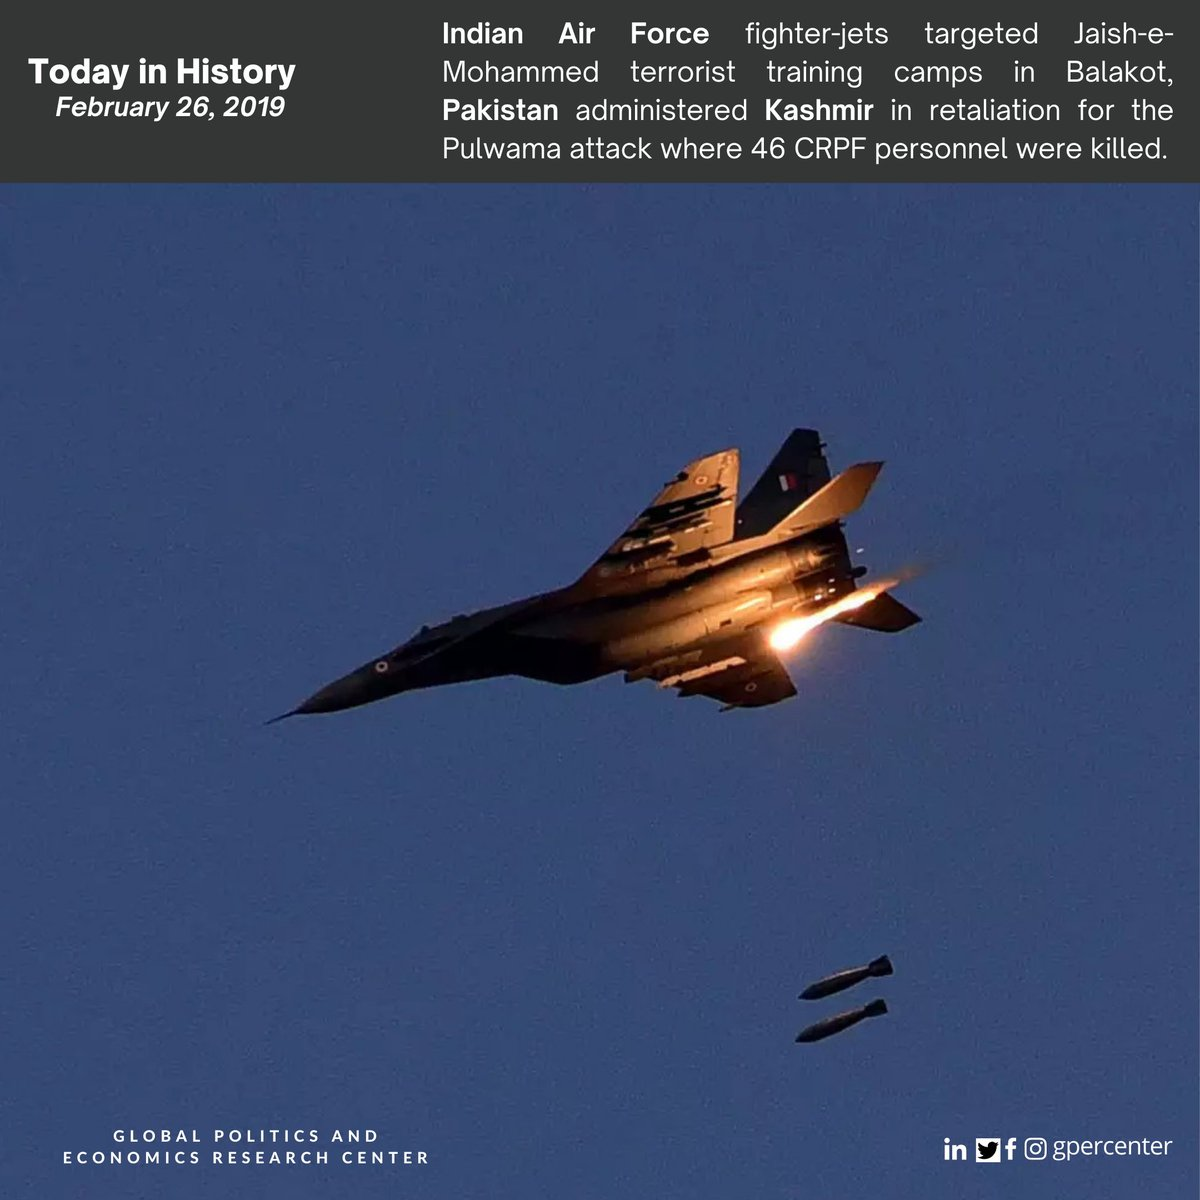 Today in History: February 26  2019 - #Indian Air Force fighter-jets targeted Jaish-e-Mohammed terrorist training camps in Balakot, Pakistan administered Kashmir in retaliation for the #Pulwama attack.  #History #India #Pakistan #Kashmir #CRPF #InternationalRelations